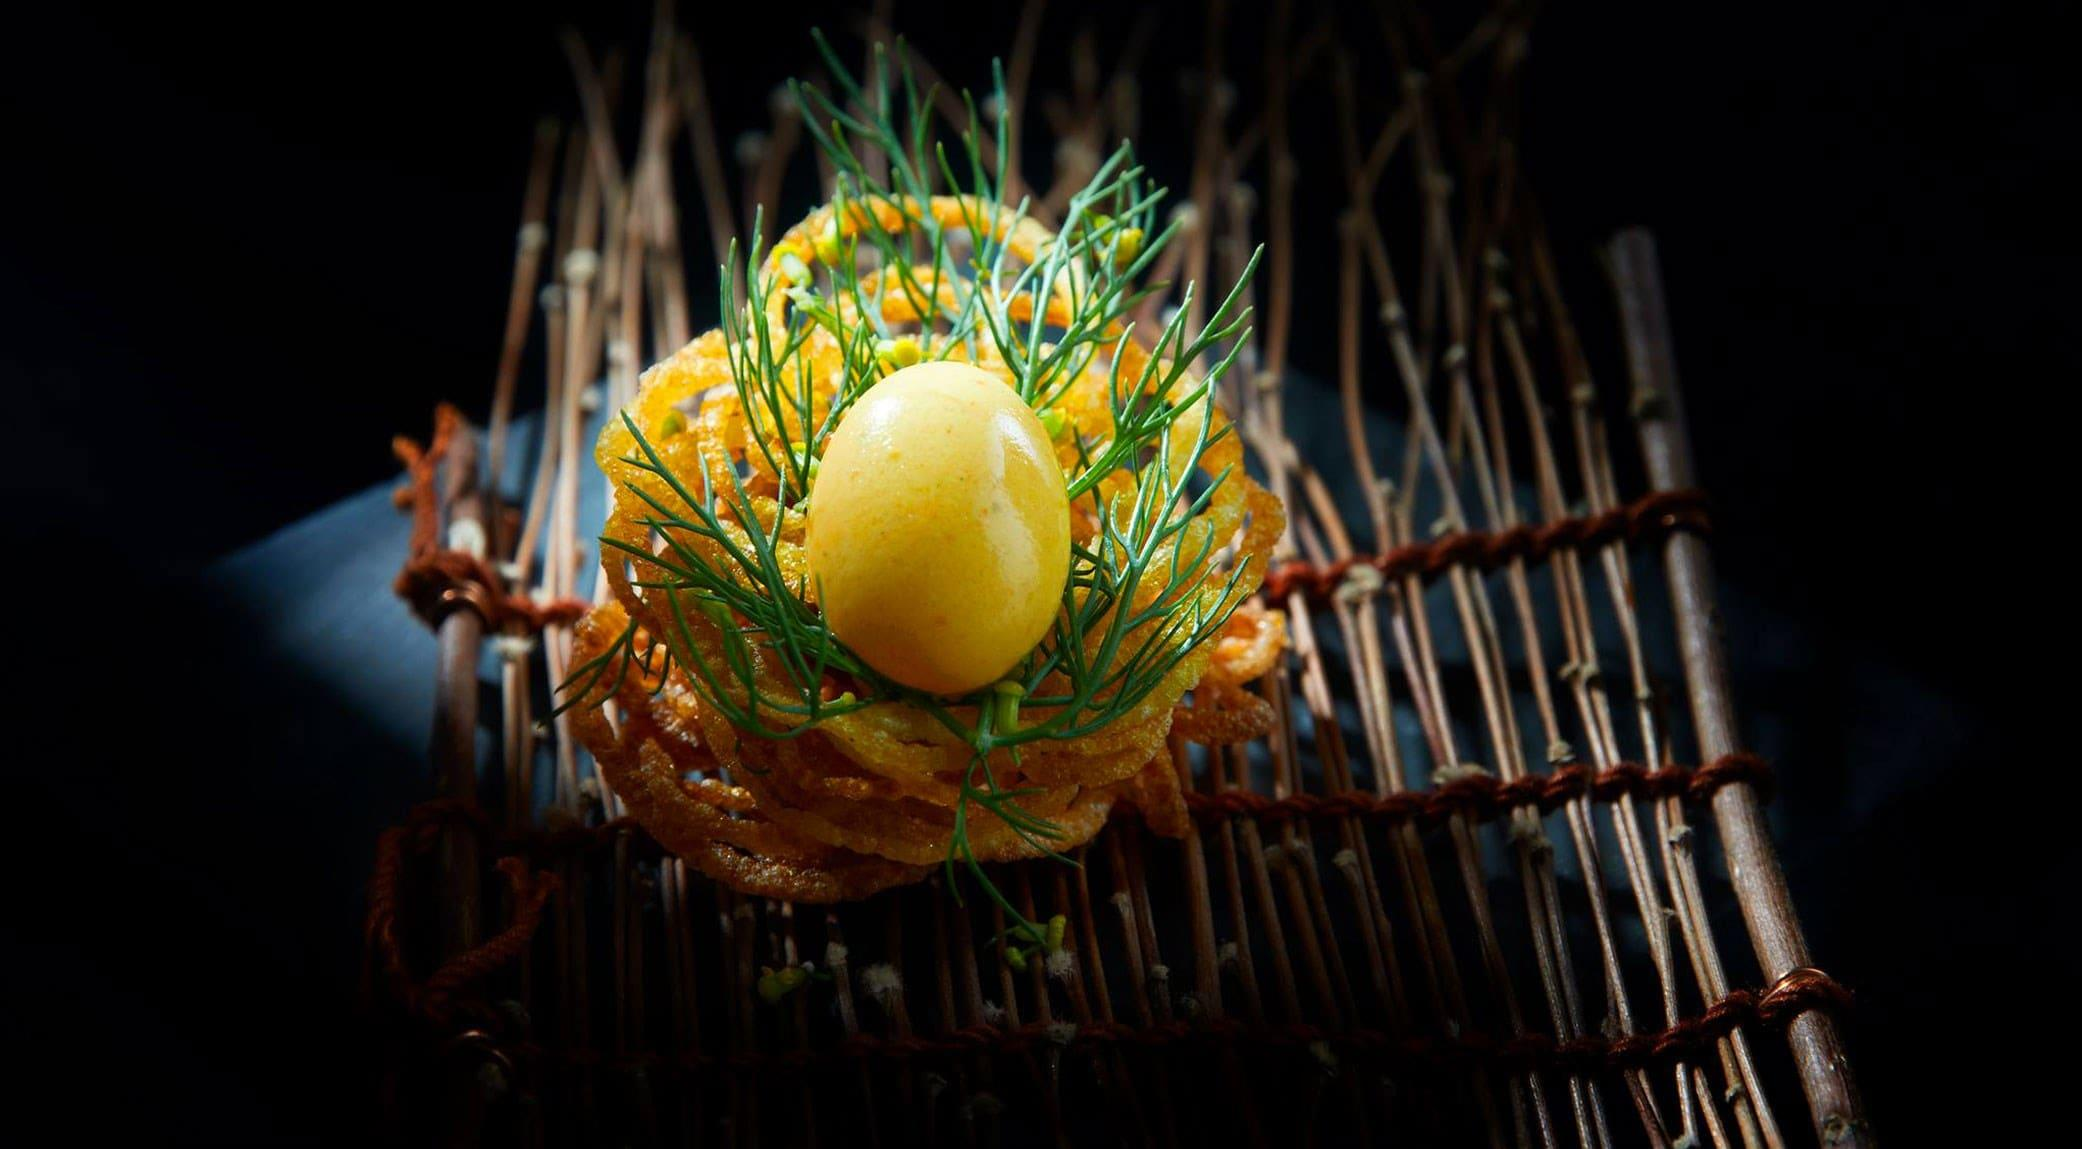 original_001-gaggan-finedininglovers.jpg